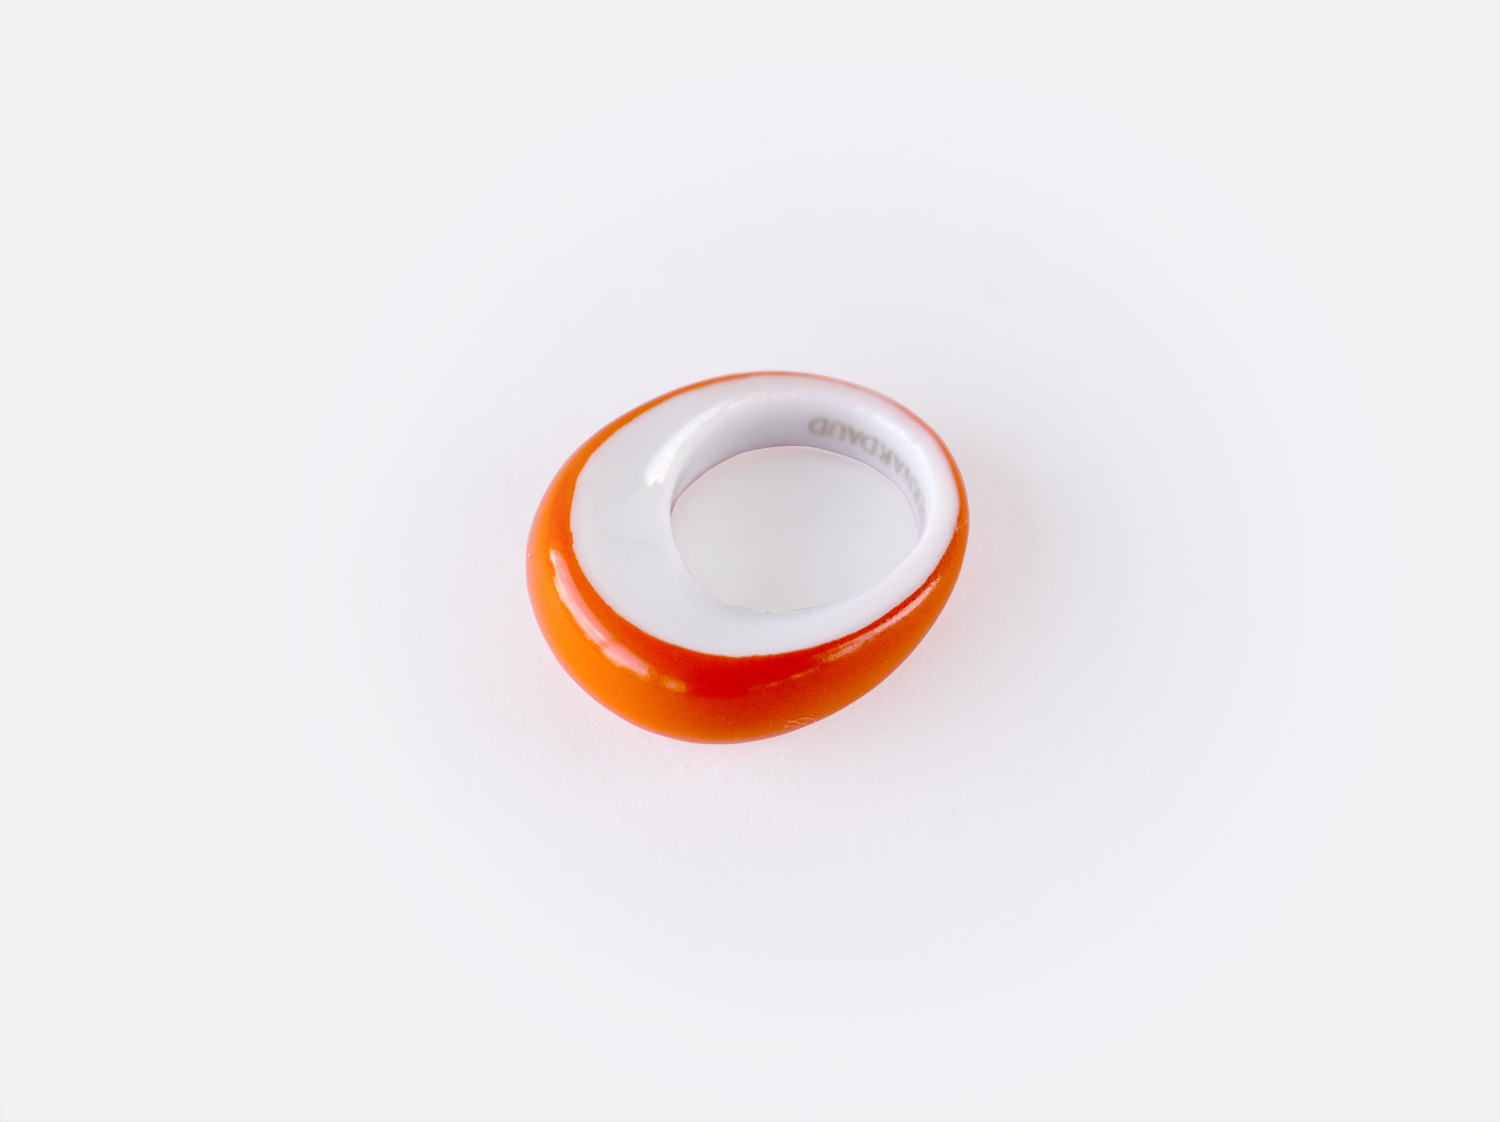 Bague anneau Alba orange en porcelaine de la collection ALBA ORANGE Bernardaud